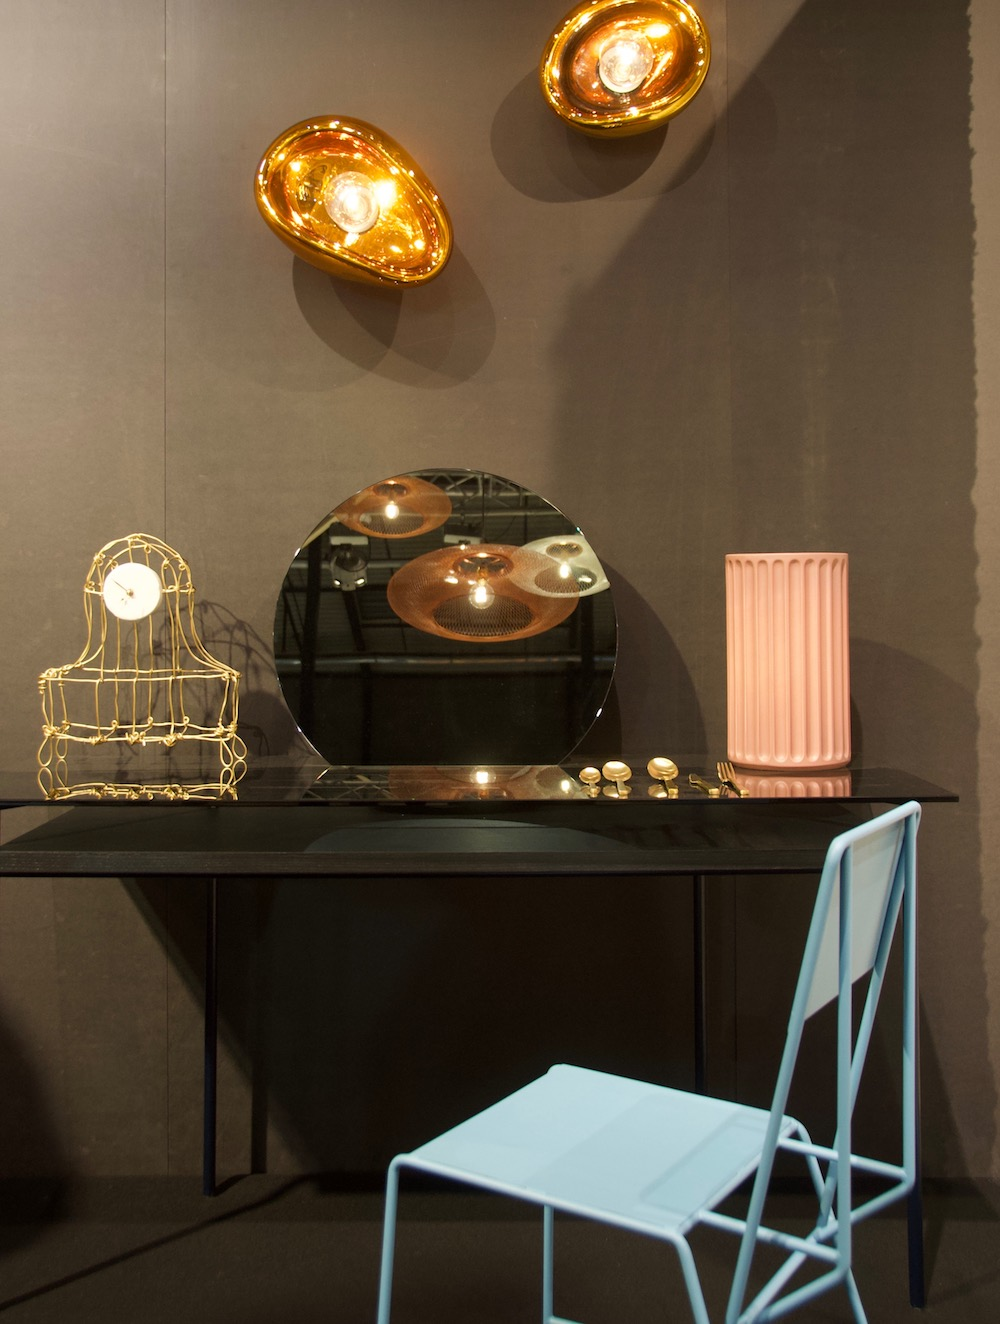 Blog Styling ID Design District 10 bedrijven extra in beeld Tuttobene